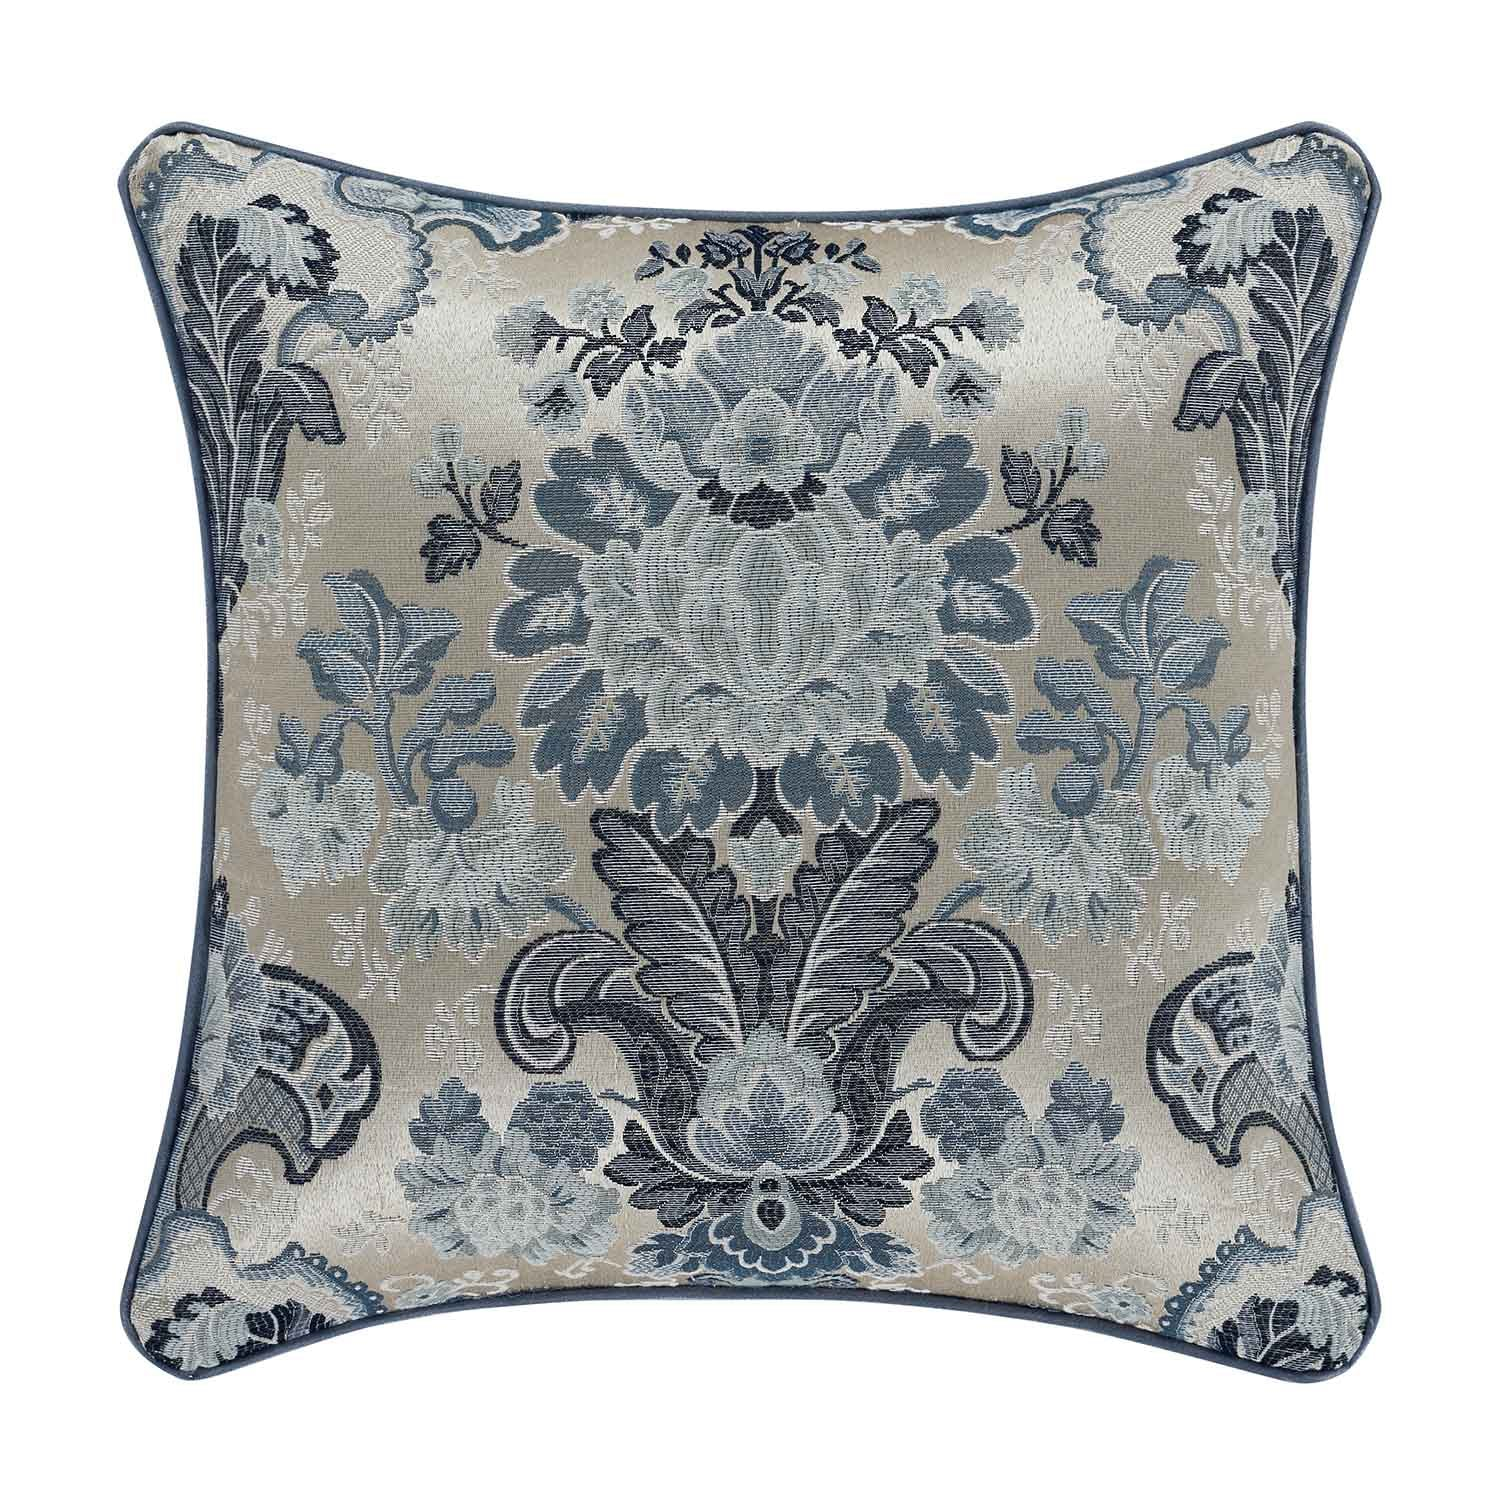 "Glendale Blue Square Decorative Throw Pillow 18""W x 18""L"" [Luxury comforter Sets] [by Latest Bedding]"